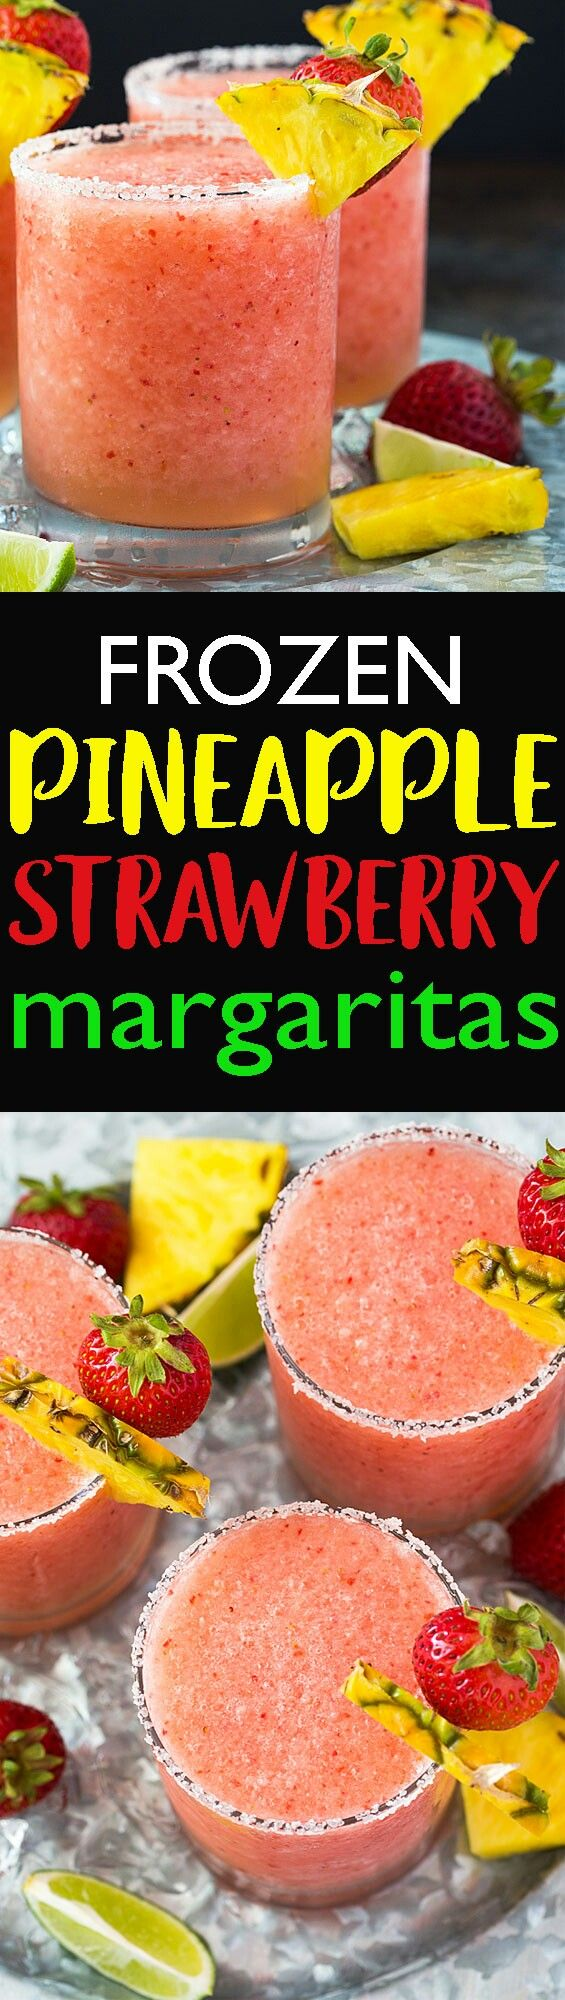 FROZEN PINEAPPLE STRAWBERRY MARGARITAS #recipe #cocktails #cocktail #cheers #party #drinks #Frozen #margarita #margritas